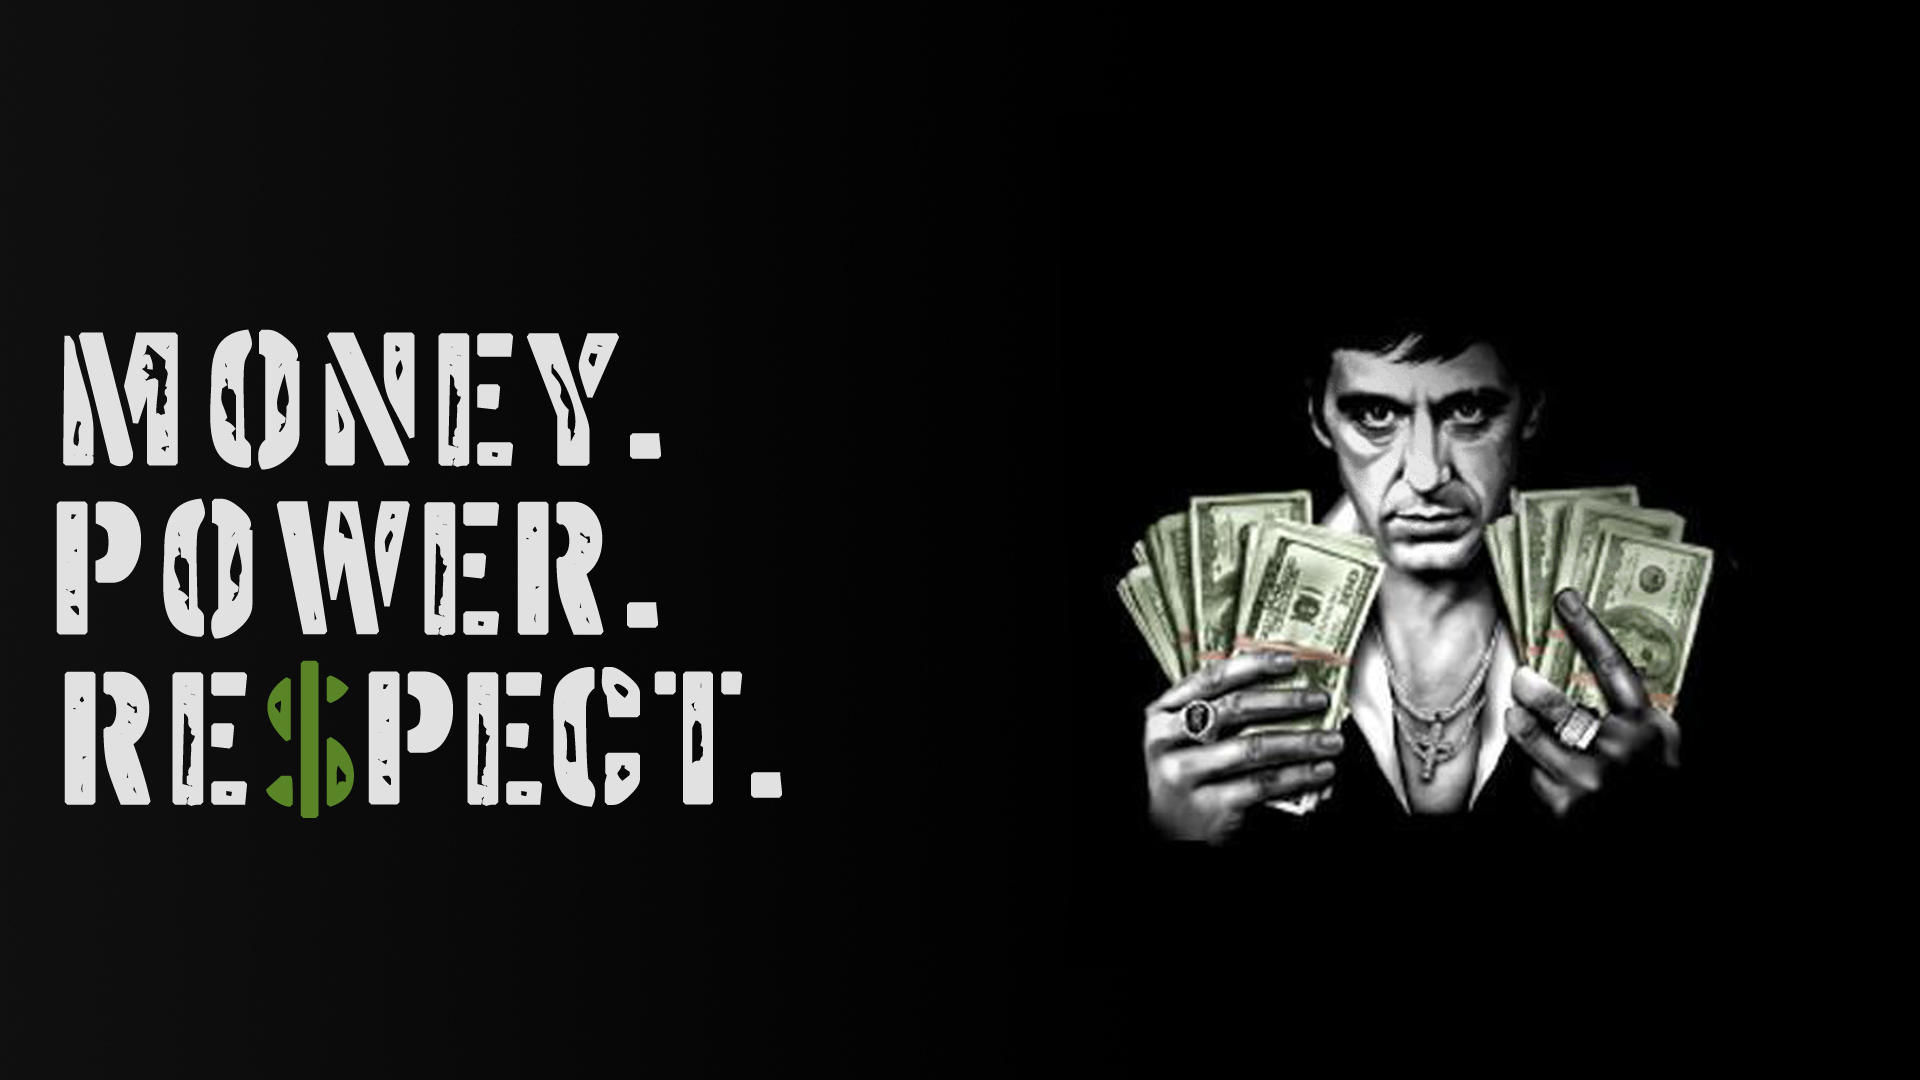 scarface wallpaper quotes pictures - photo #1